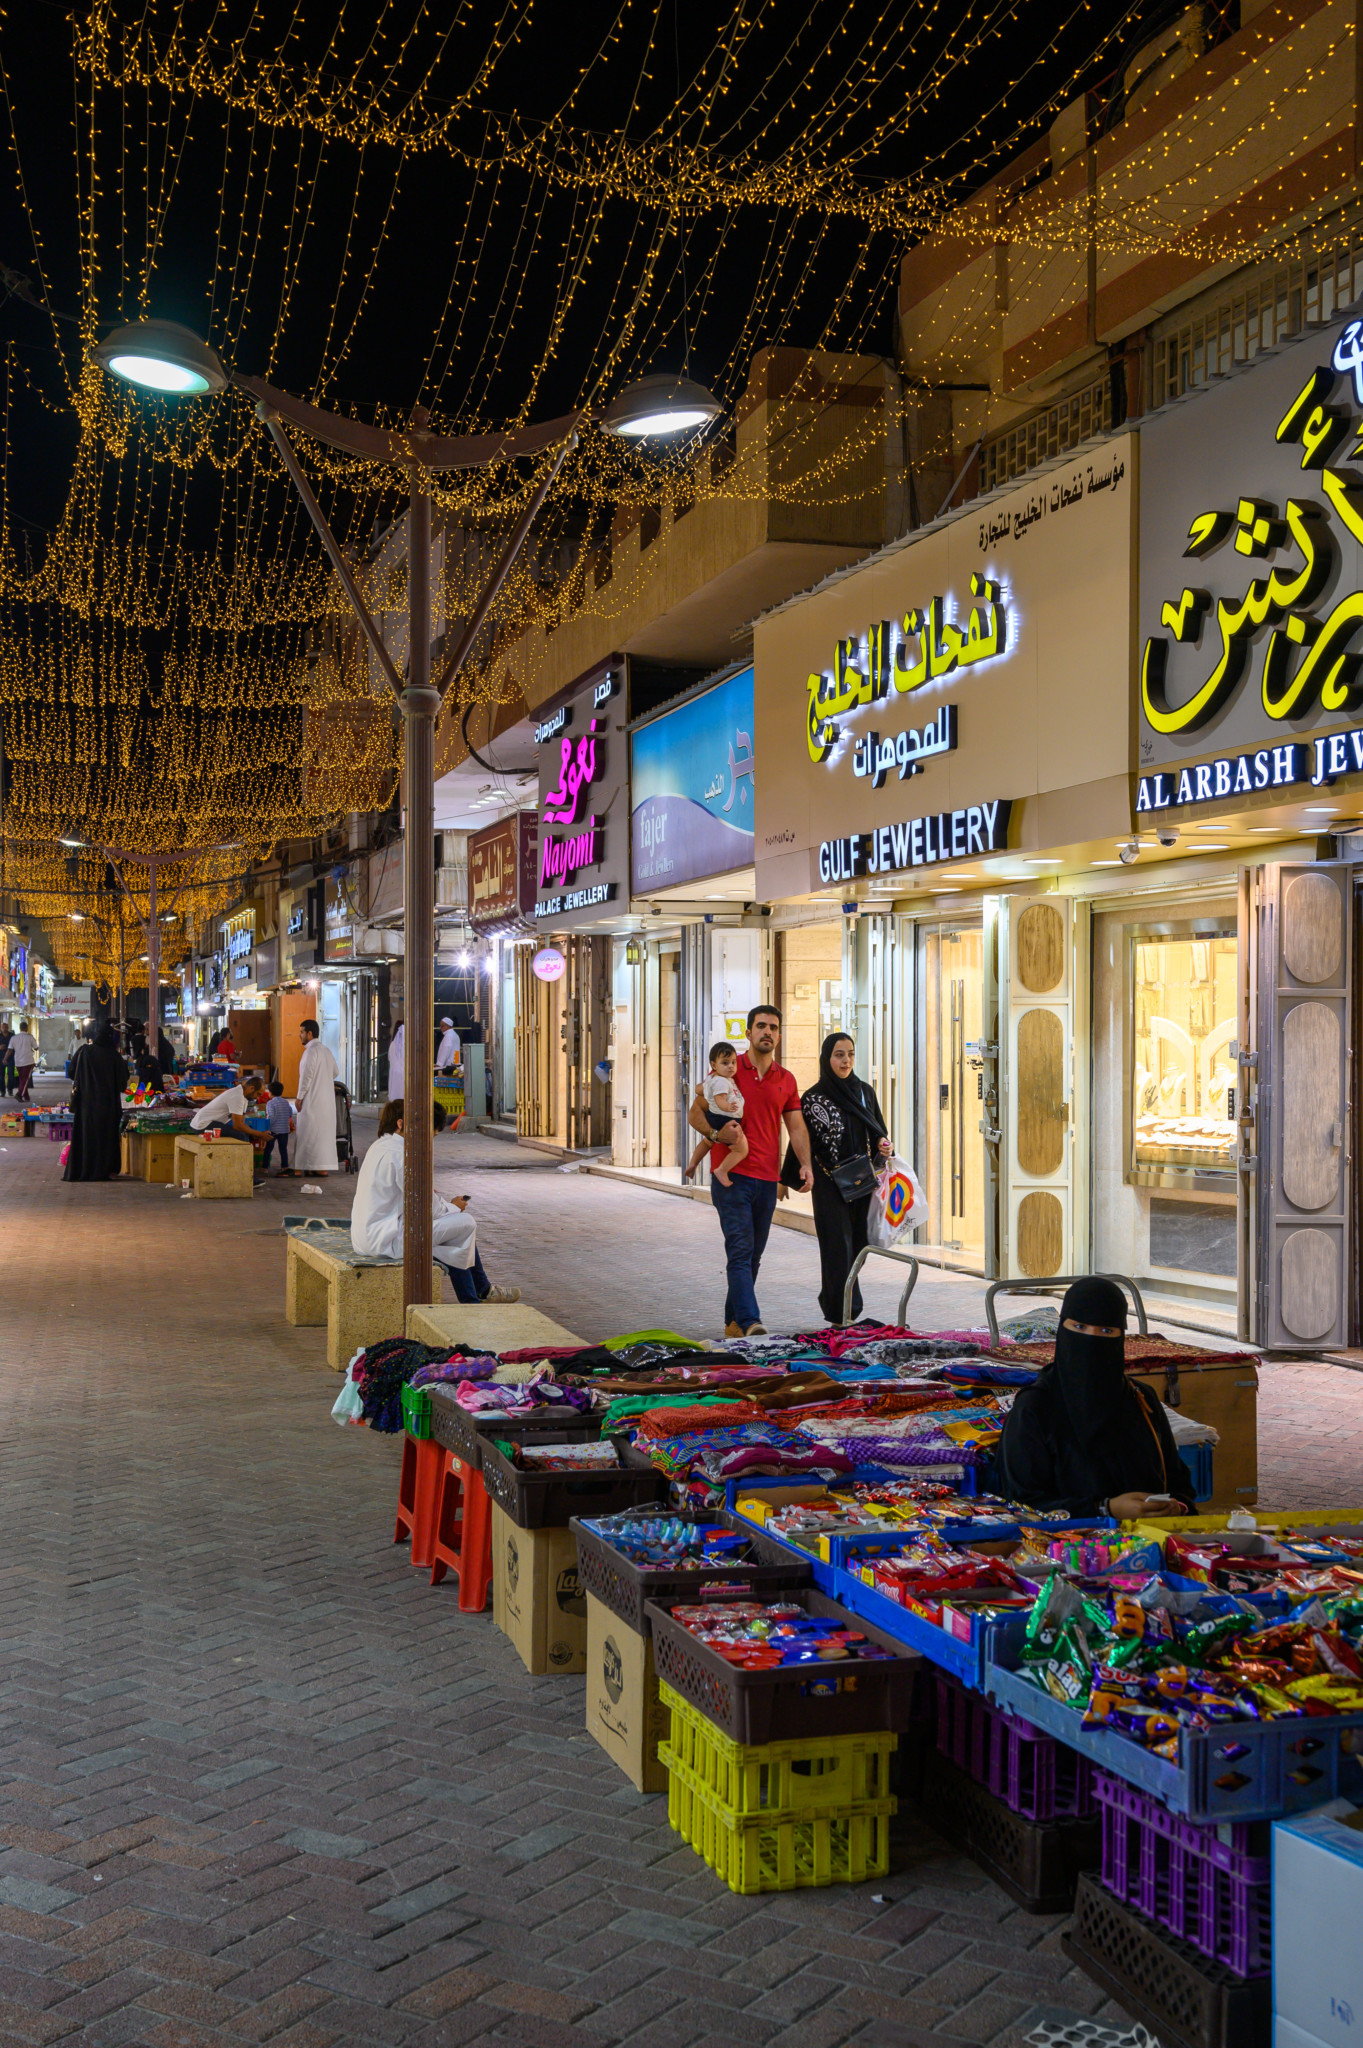 Goldmarkt in Jizan